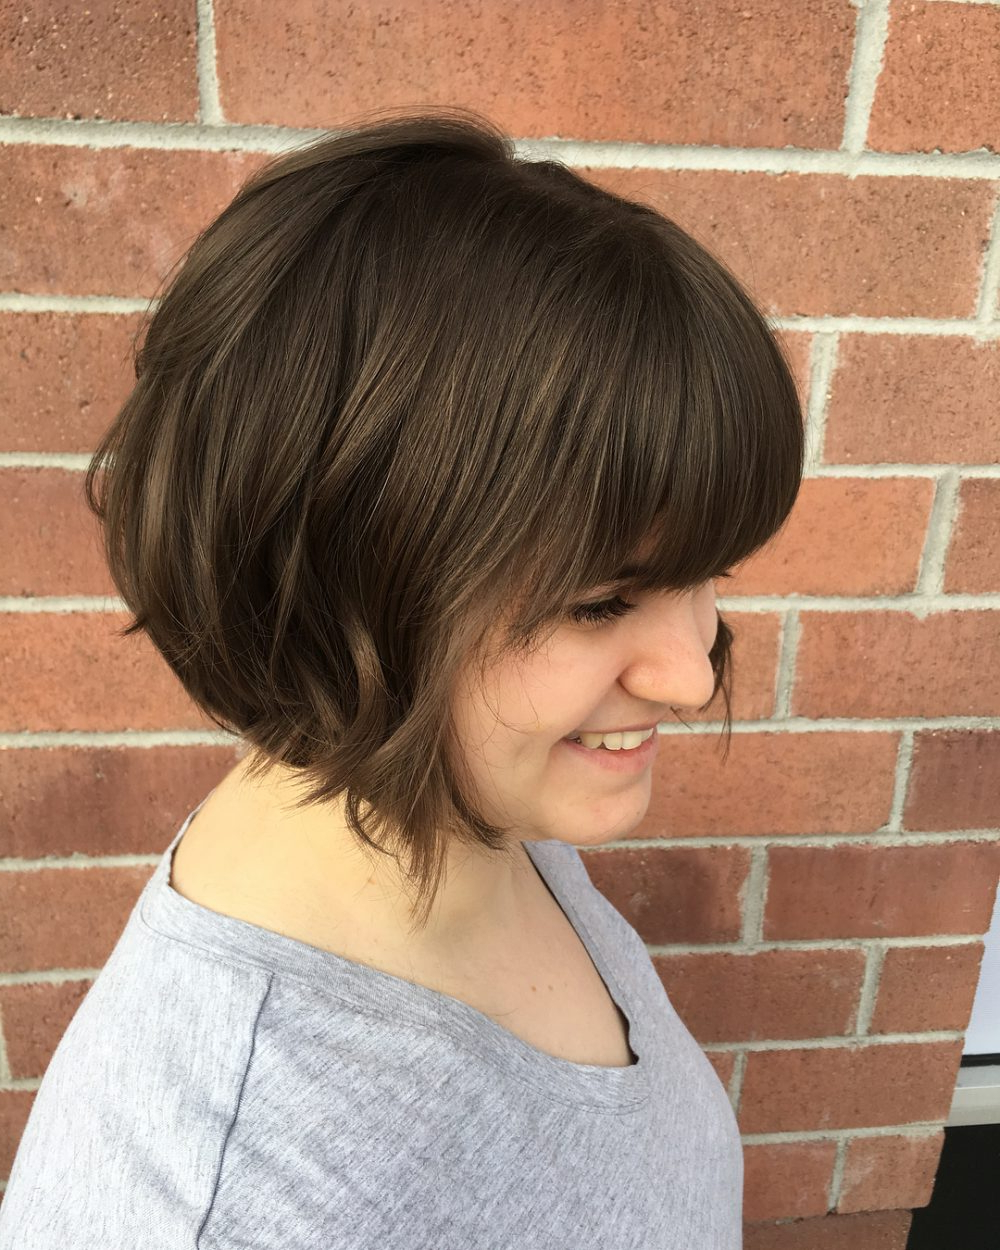 34 Greatest Short Haircuts And Hairstyles For Thick Hair For 2018 Pertaining To Sassy Short Haircuts For Thick Hair (View 10 of 25)